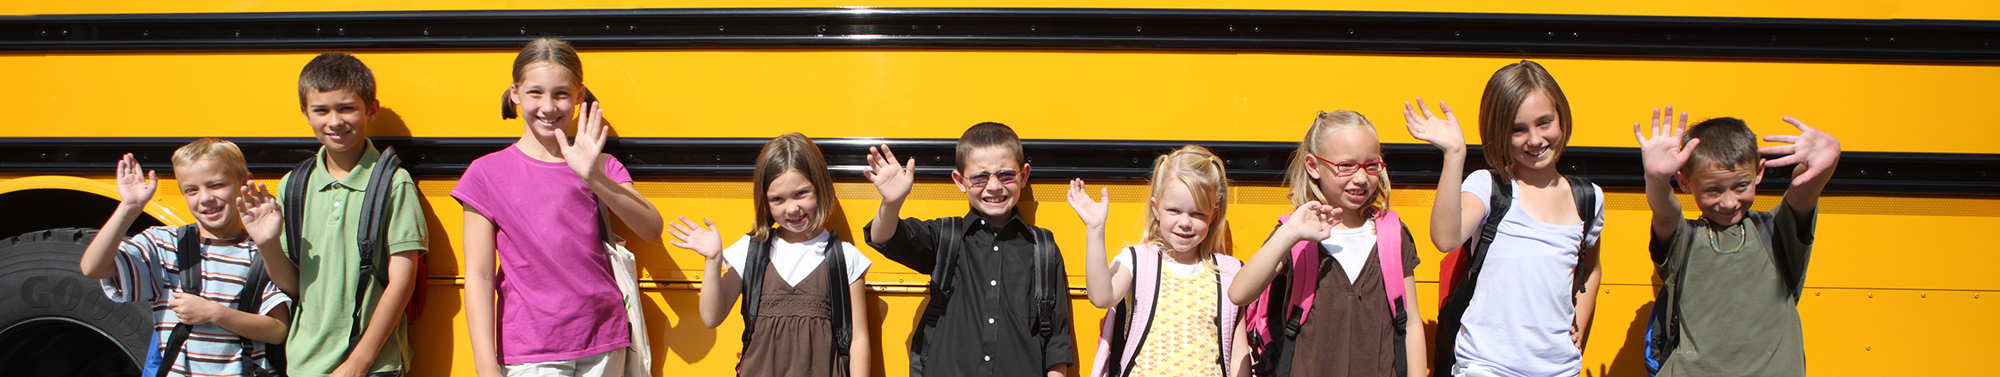 group of students in front of school bus